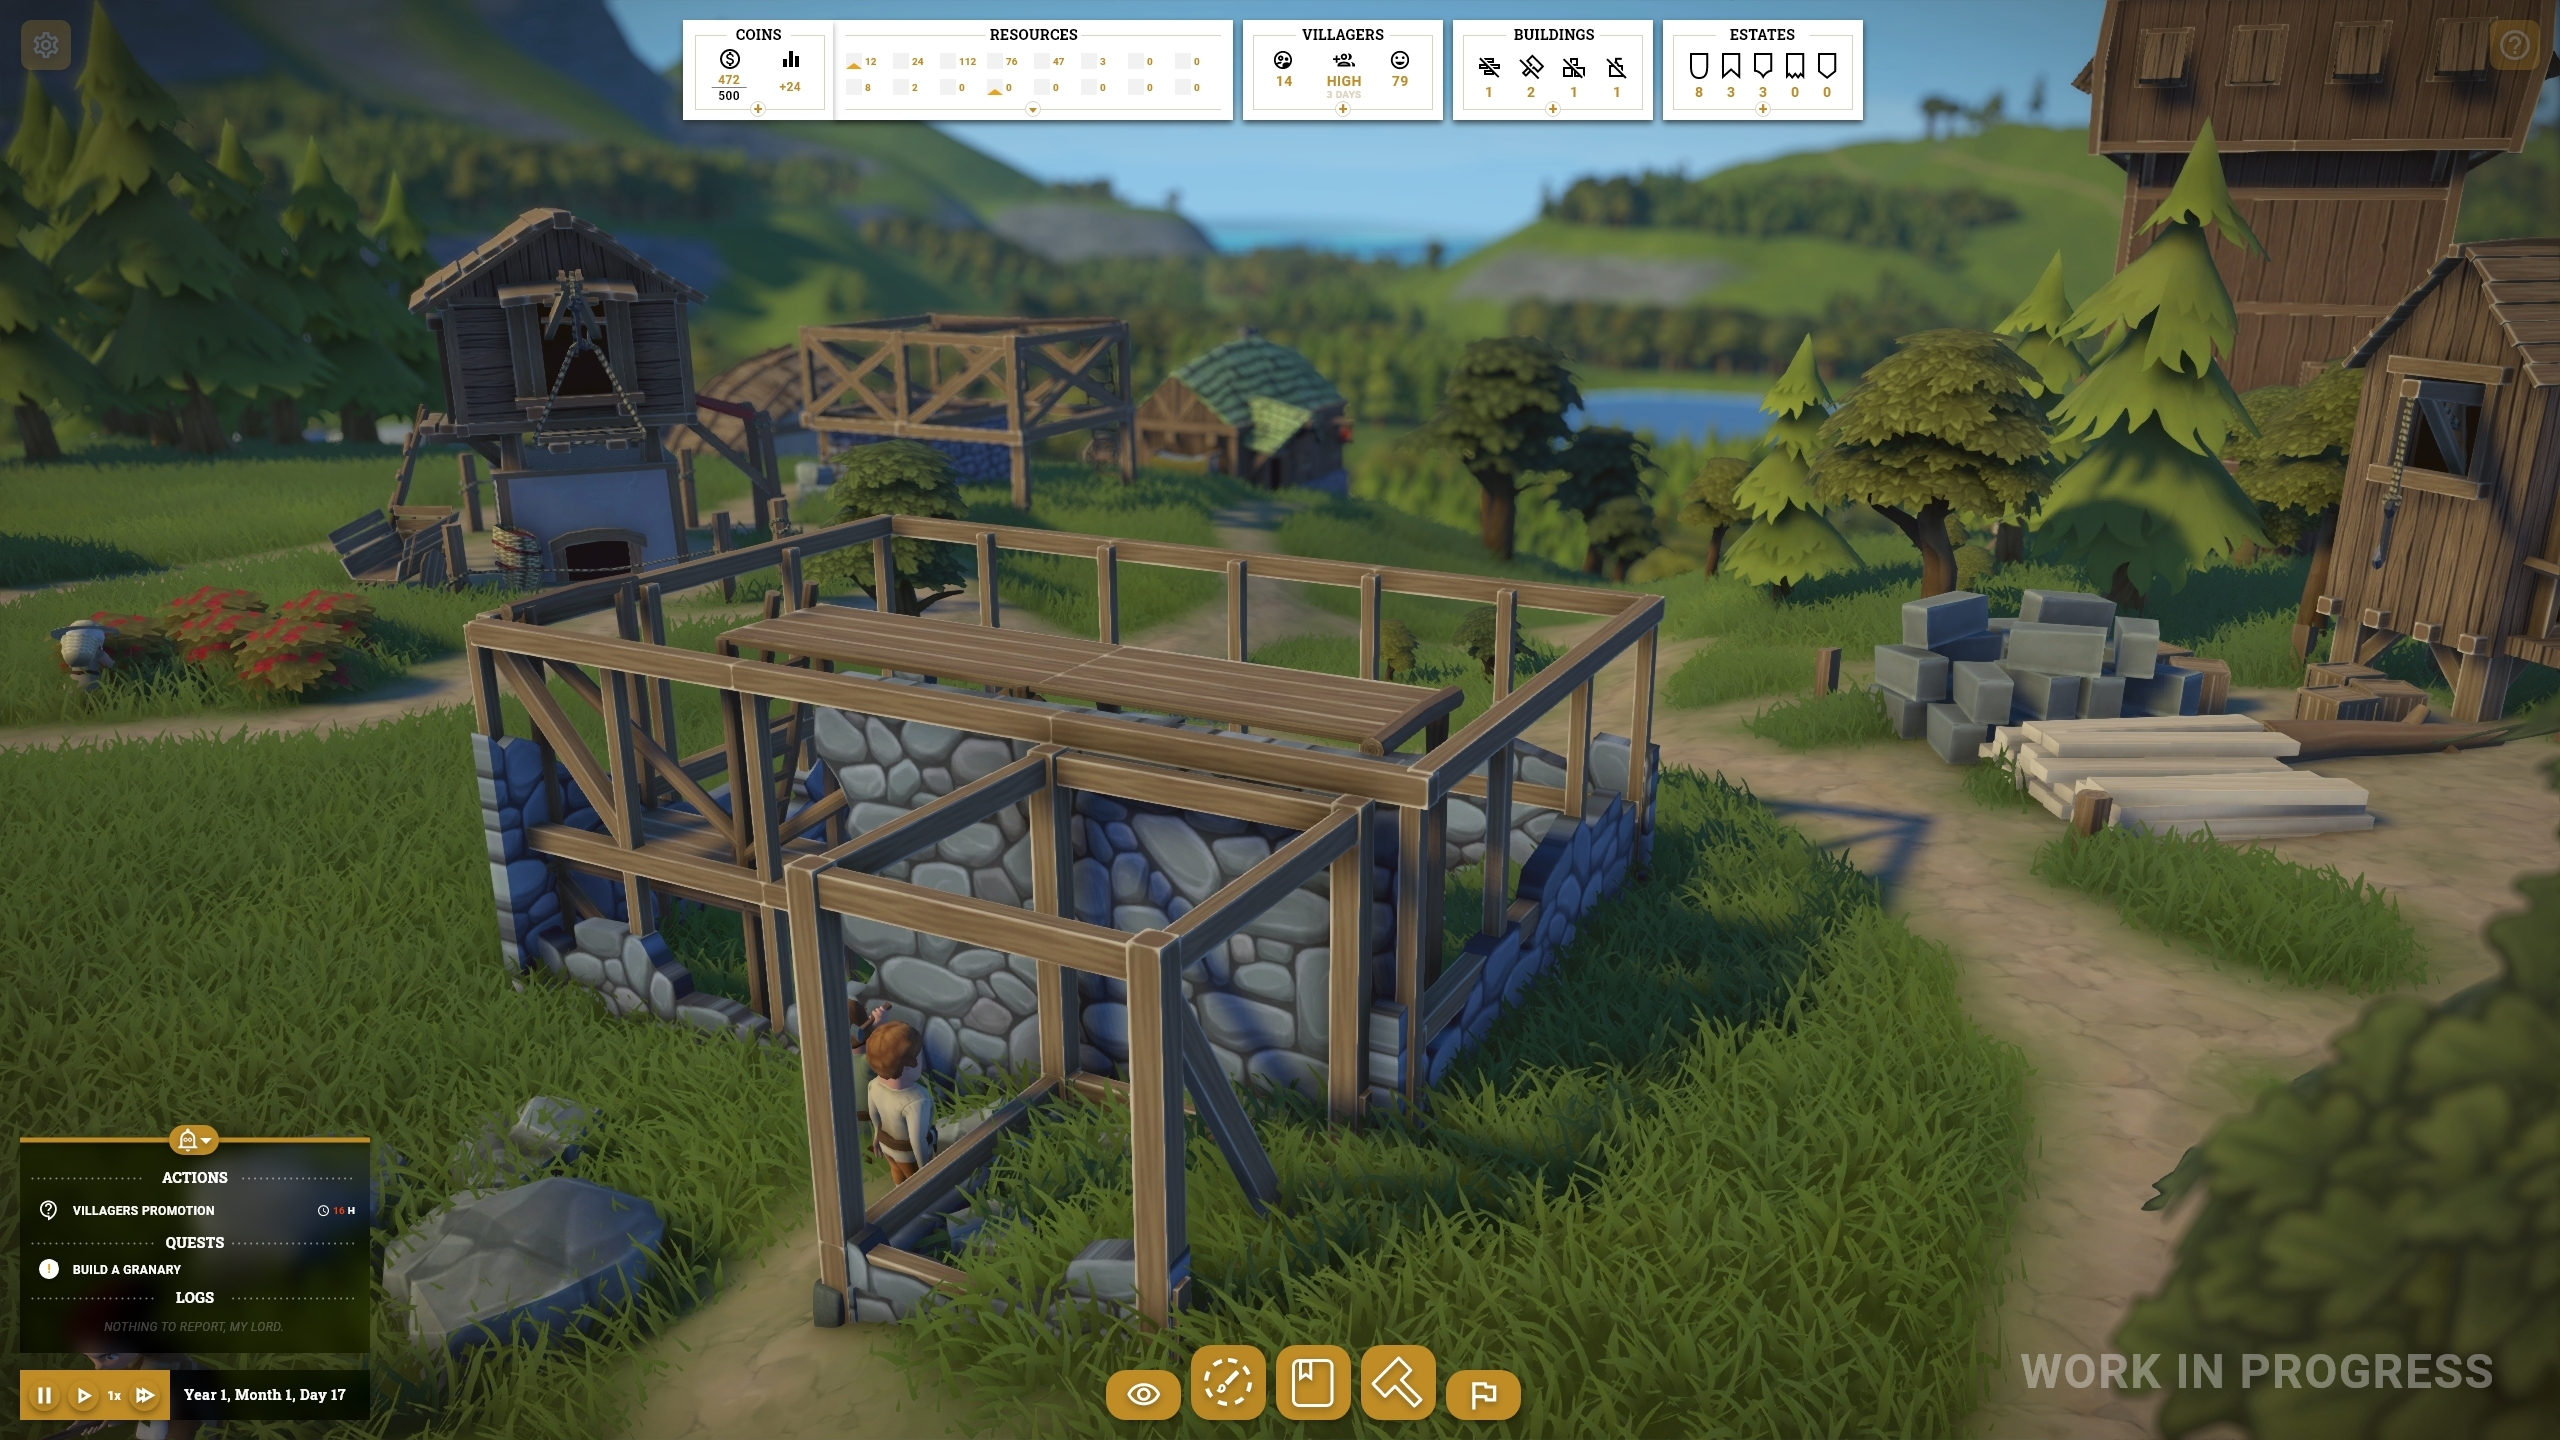 Another work in progress screenshot of Foundation's new UI,  showing an early stage of the game. A building is half completed on screen. At the top, there are small menus showing how much money and other resources the player's town has, as well as their villager count and happiness, the status of their buildings and their estates.